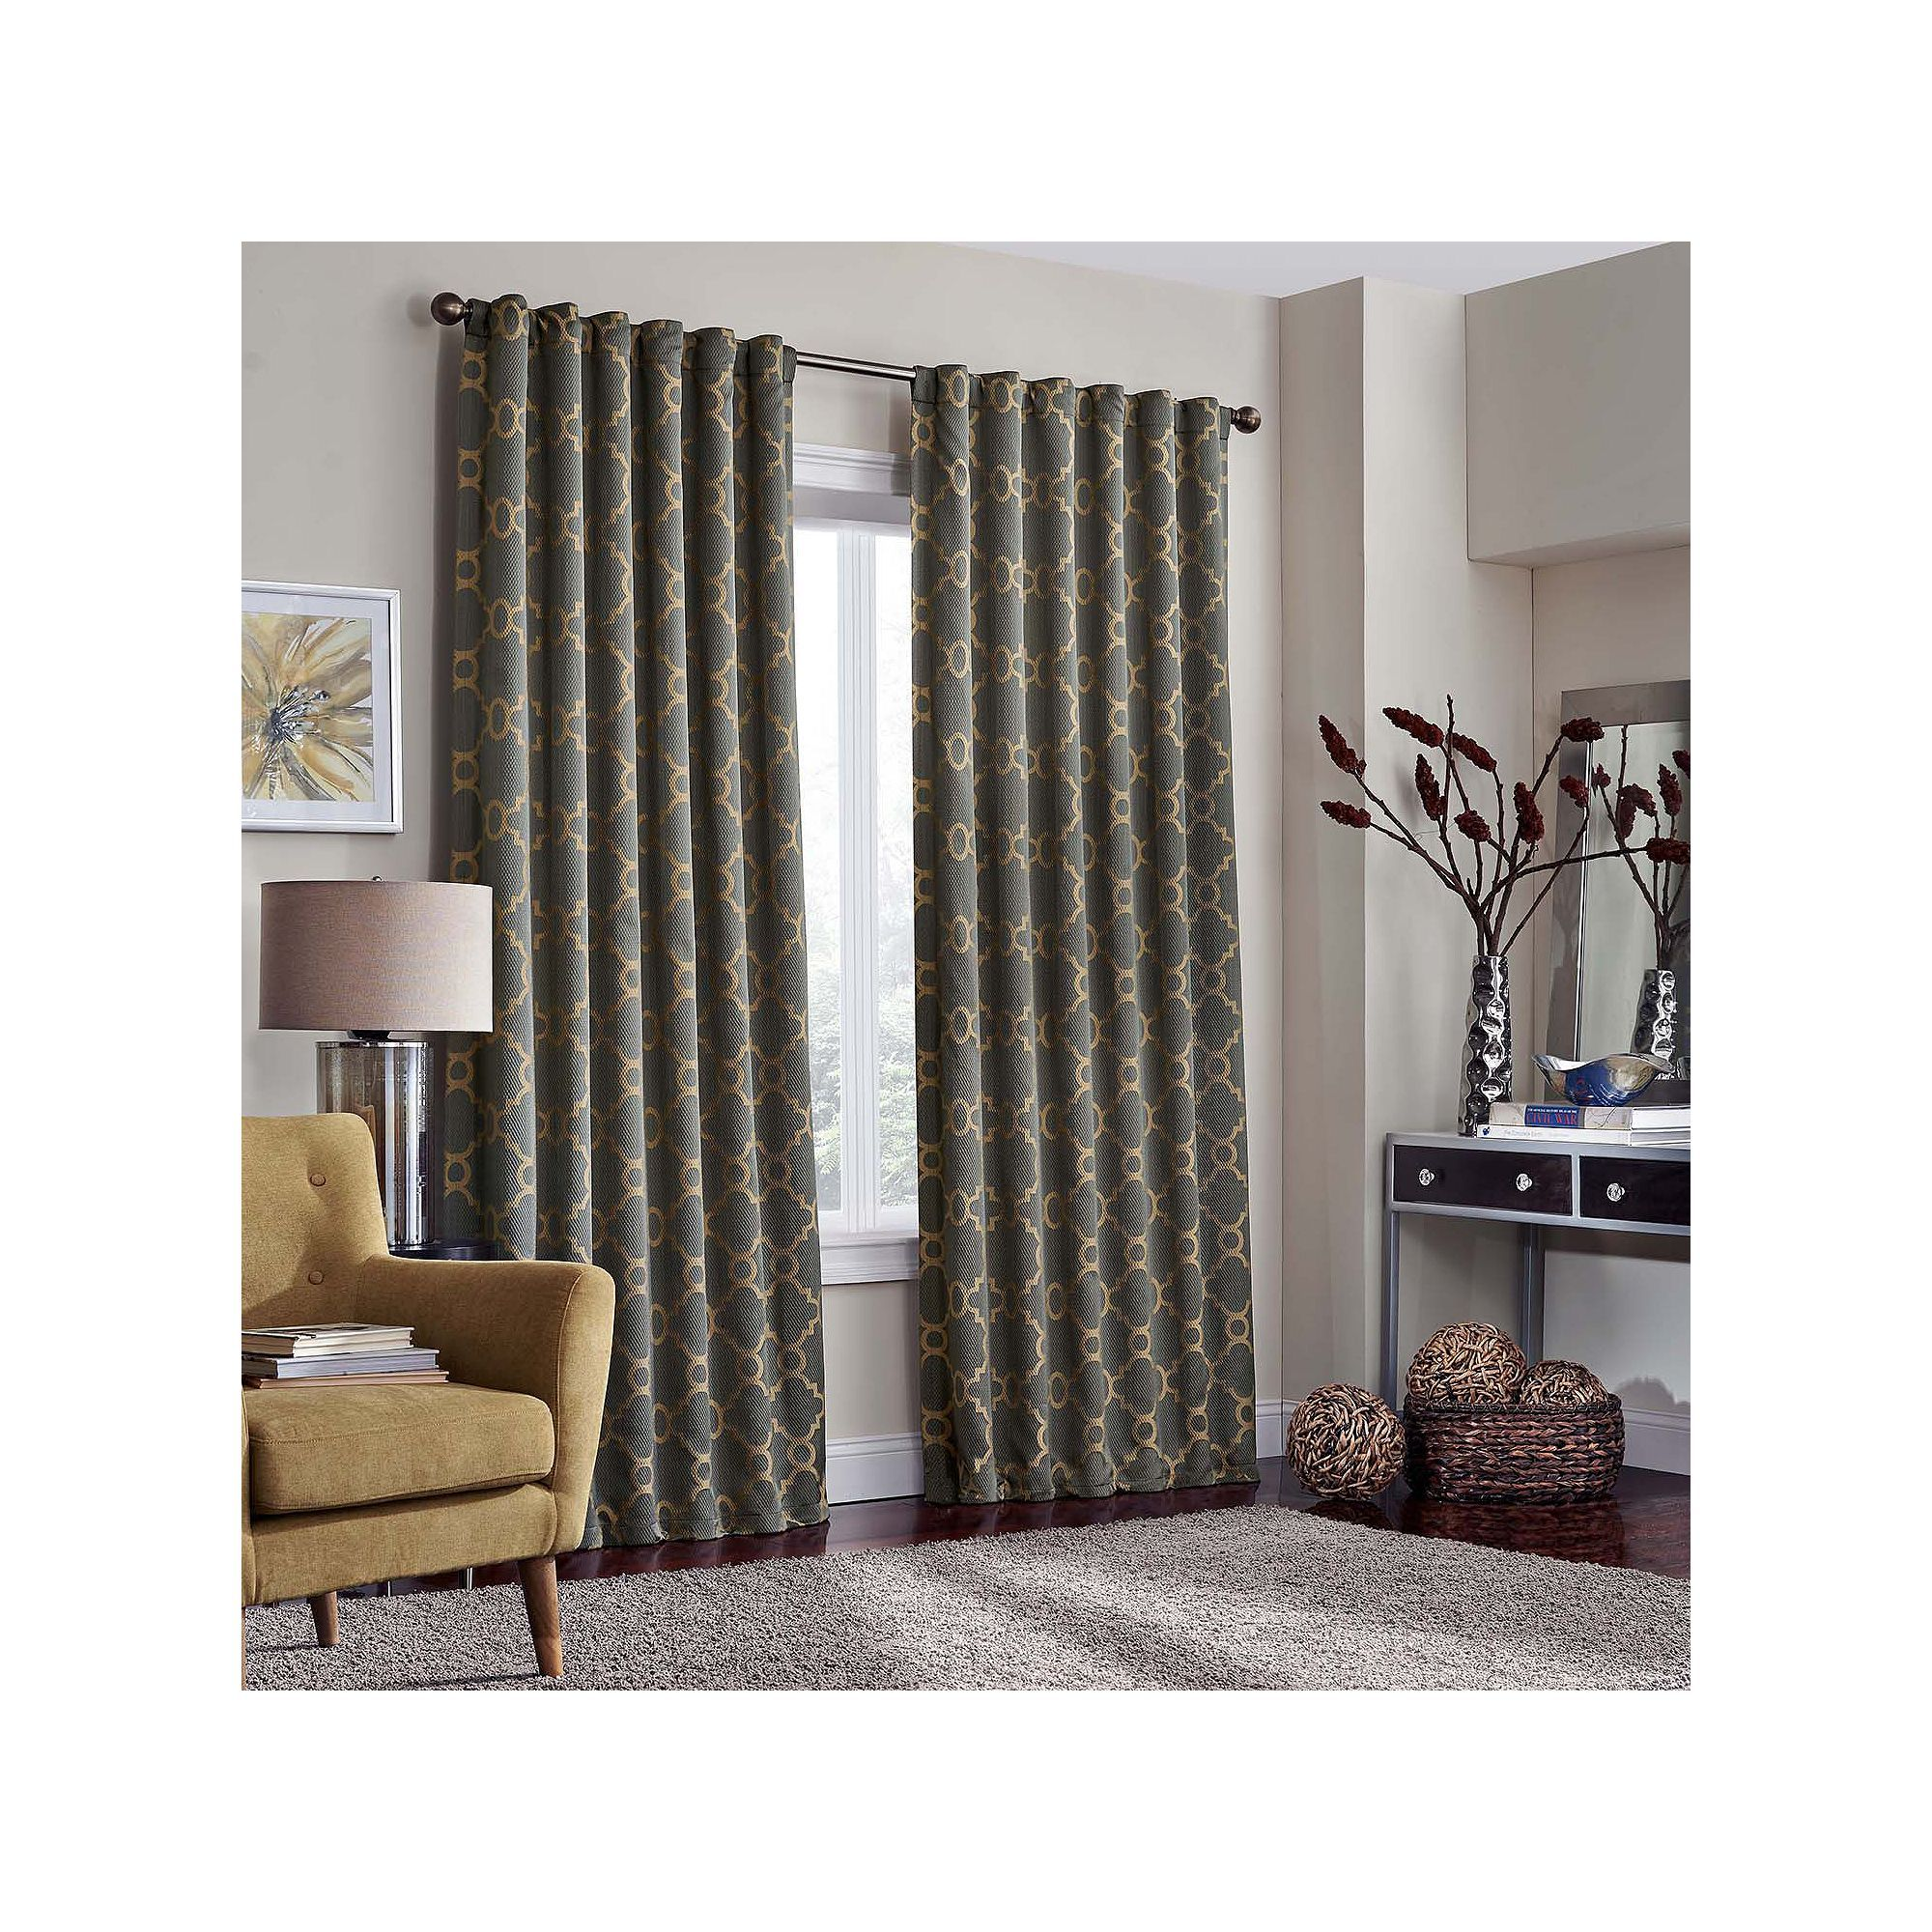 Eclipse Cornell Thermalayer Blackout Curtain, Grey